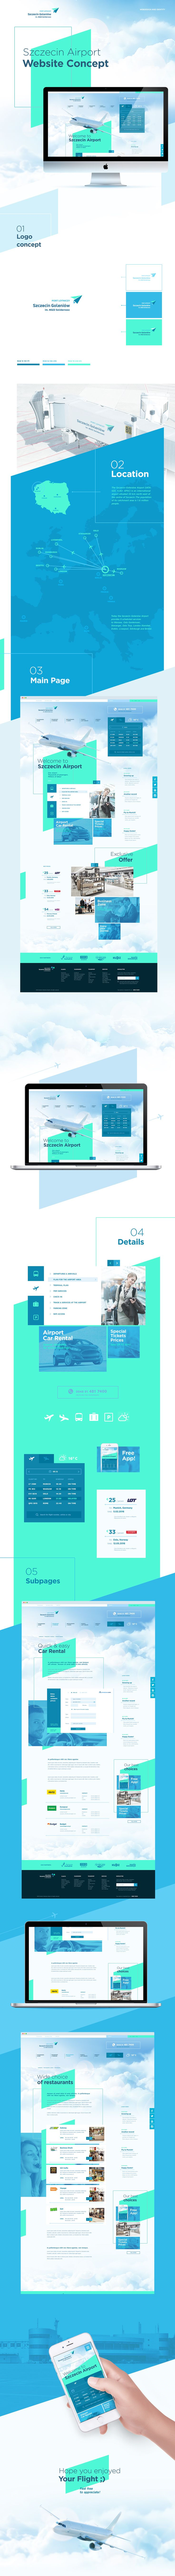 Szczecin-Goleniów is a local airport located near to my home city. Coming across their website, I thougt it would be fun to make my own redesign of it. So, here's what I came up with.